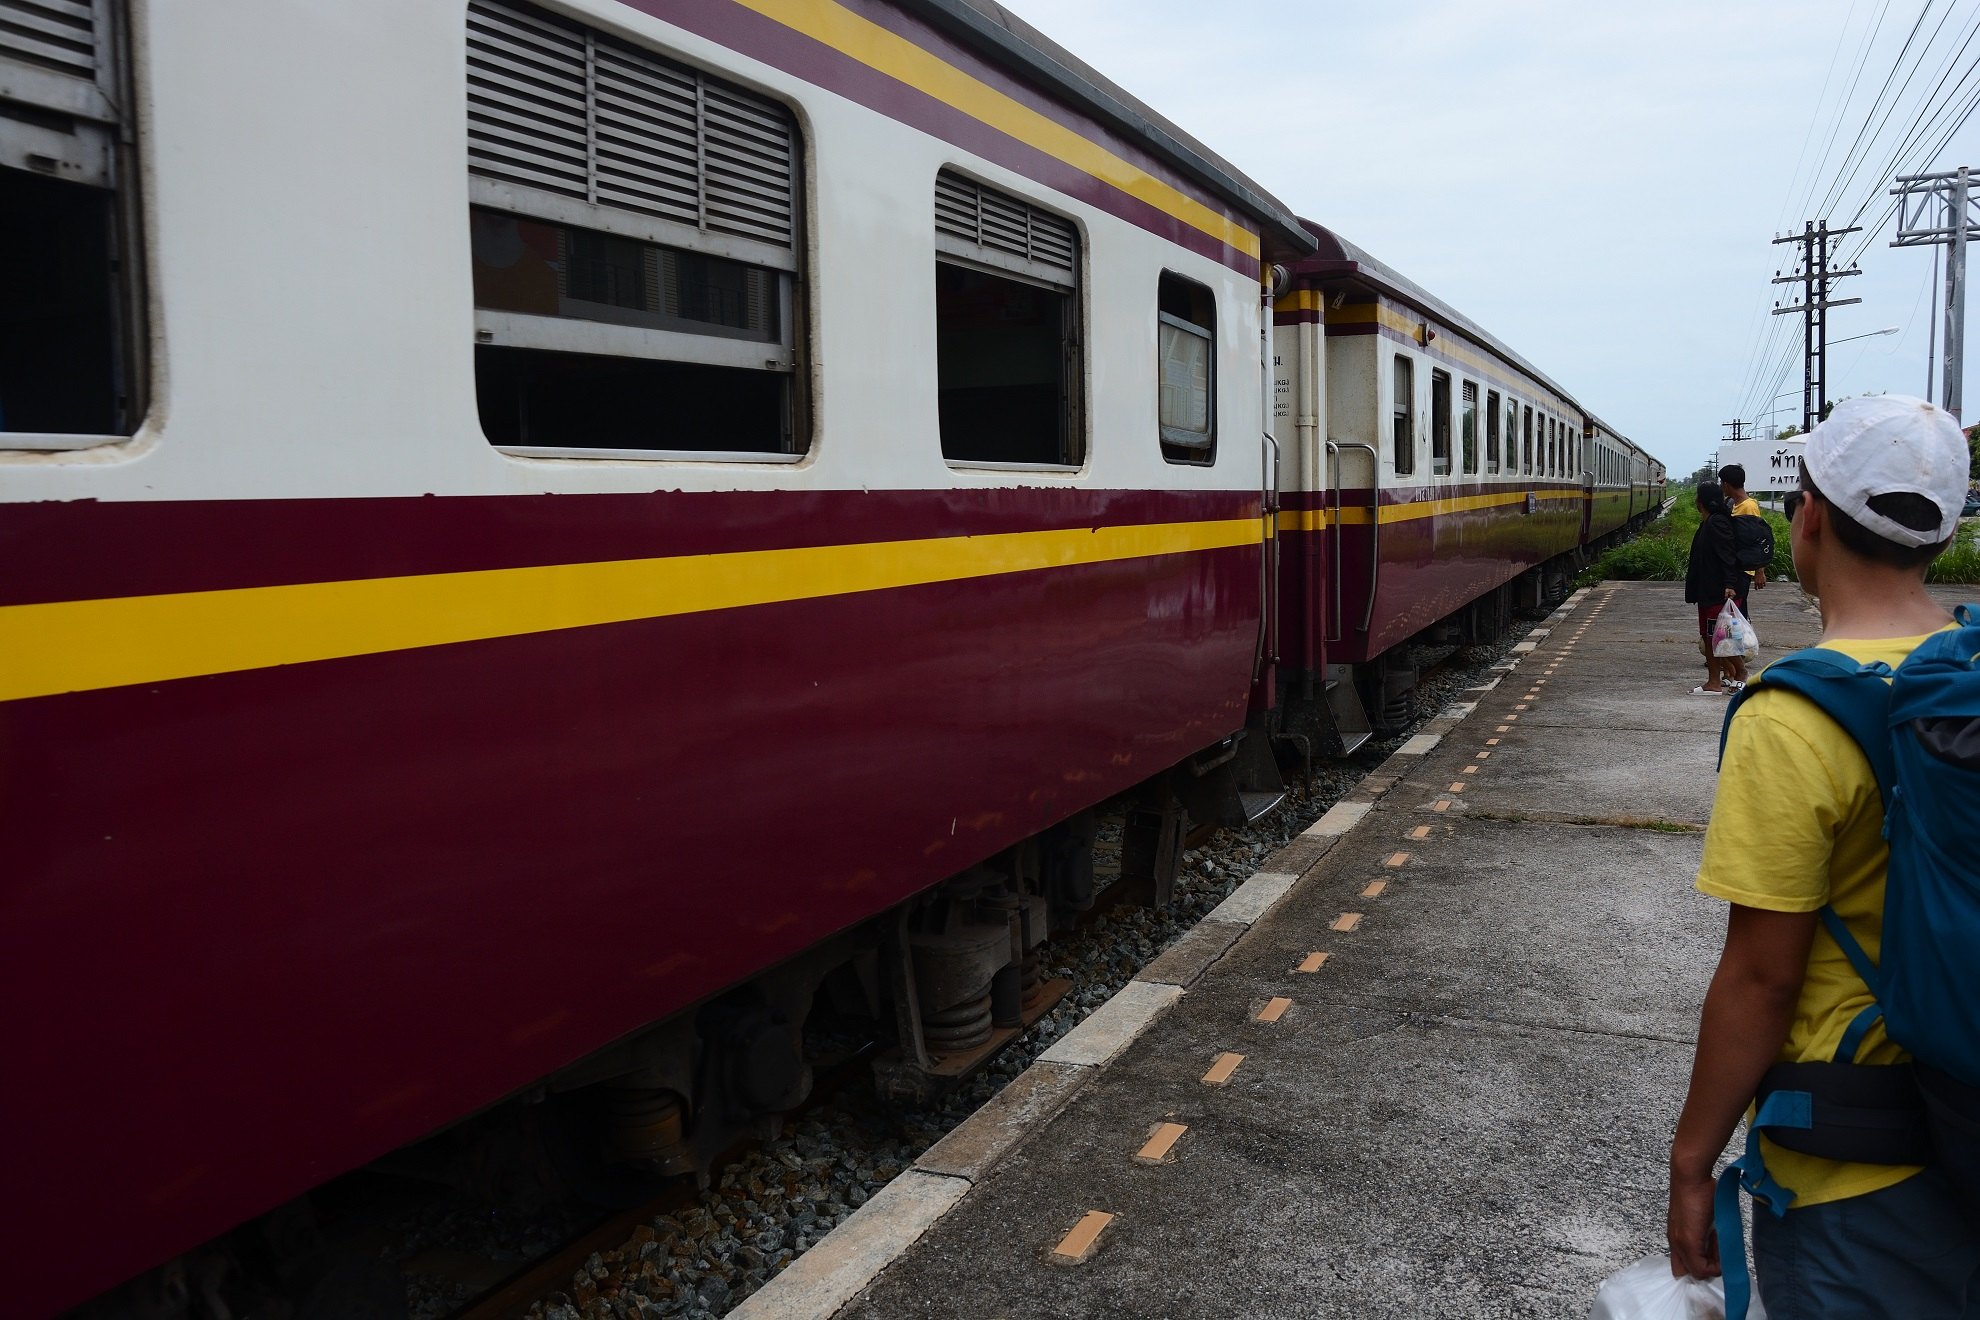 The train arrives at Pattaya South.